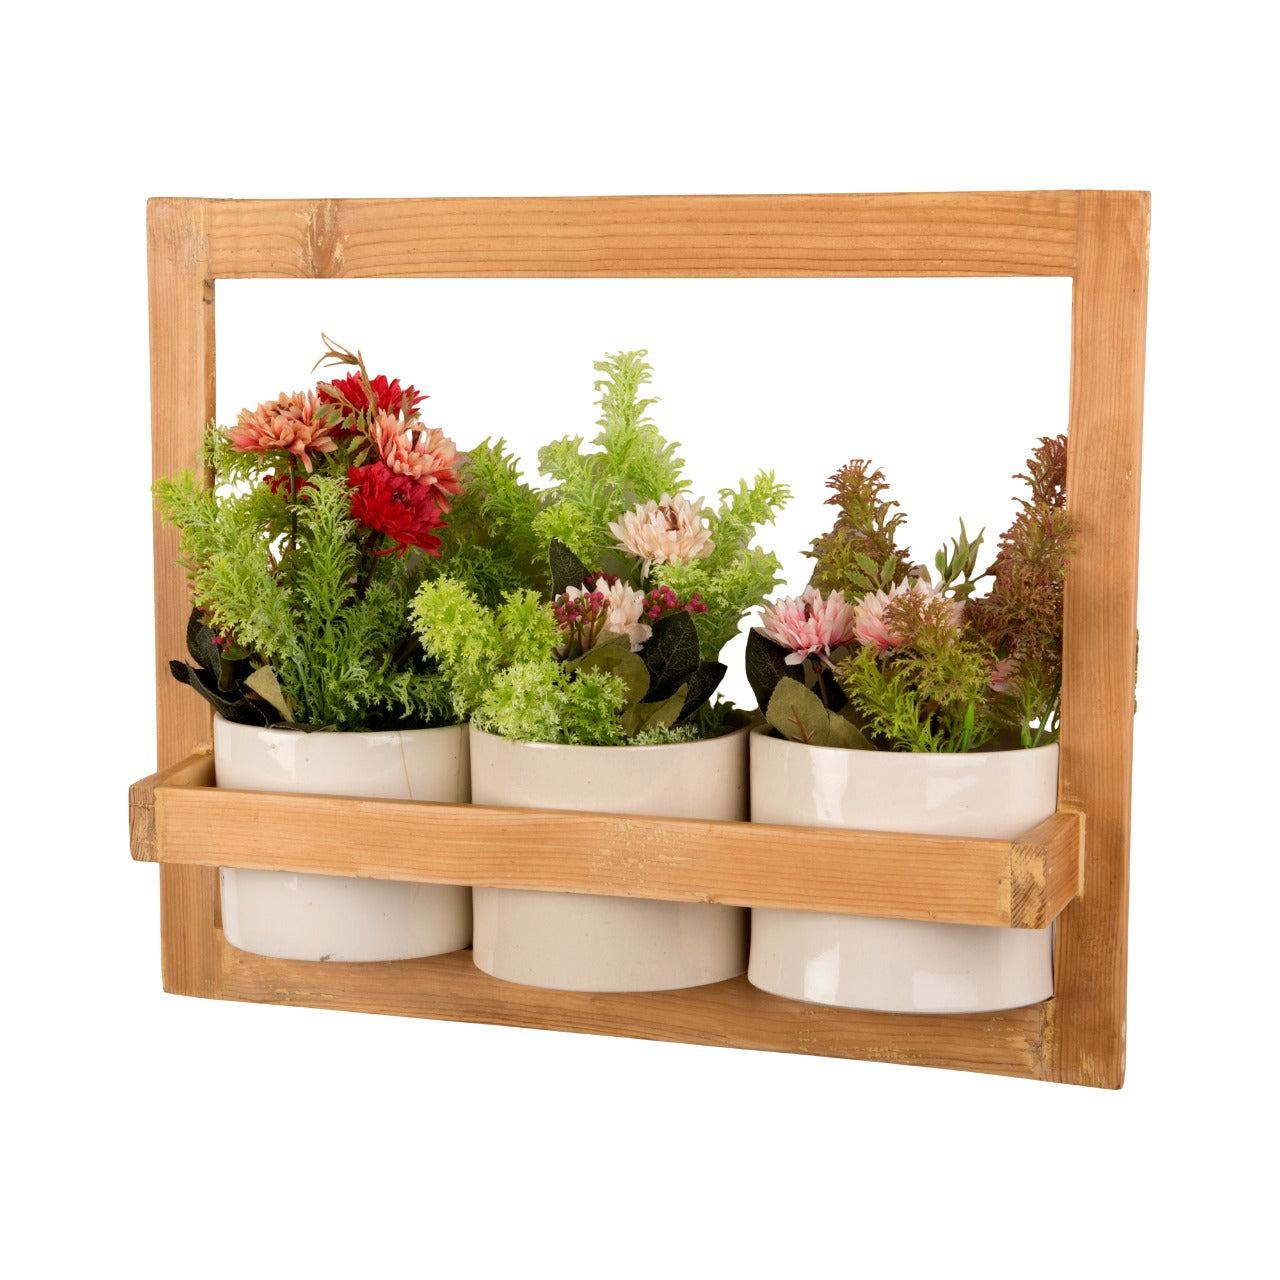 Hanging Wooden Planters with Ceramic Pots